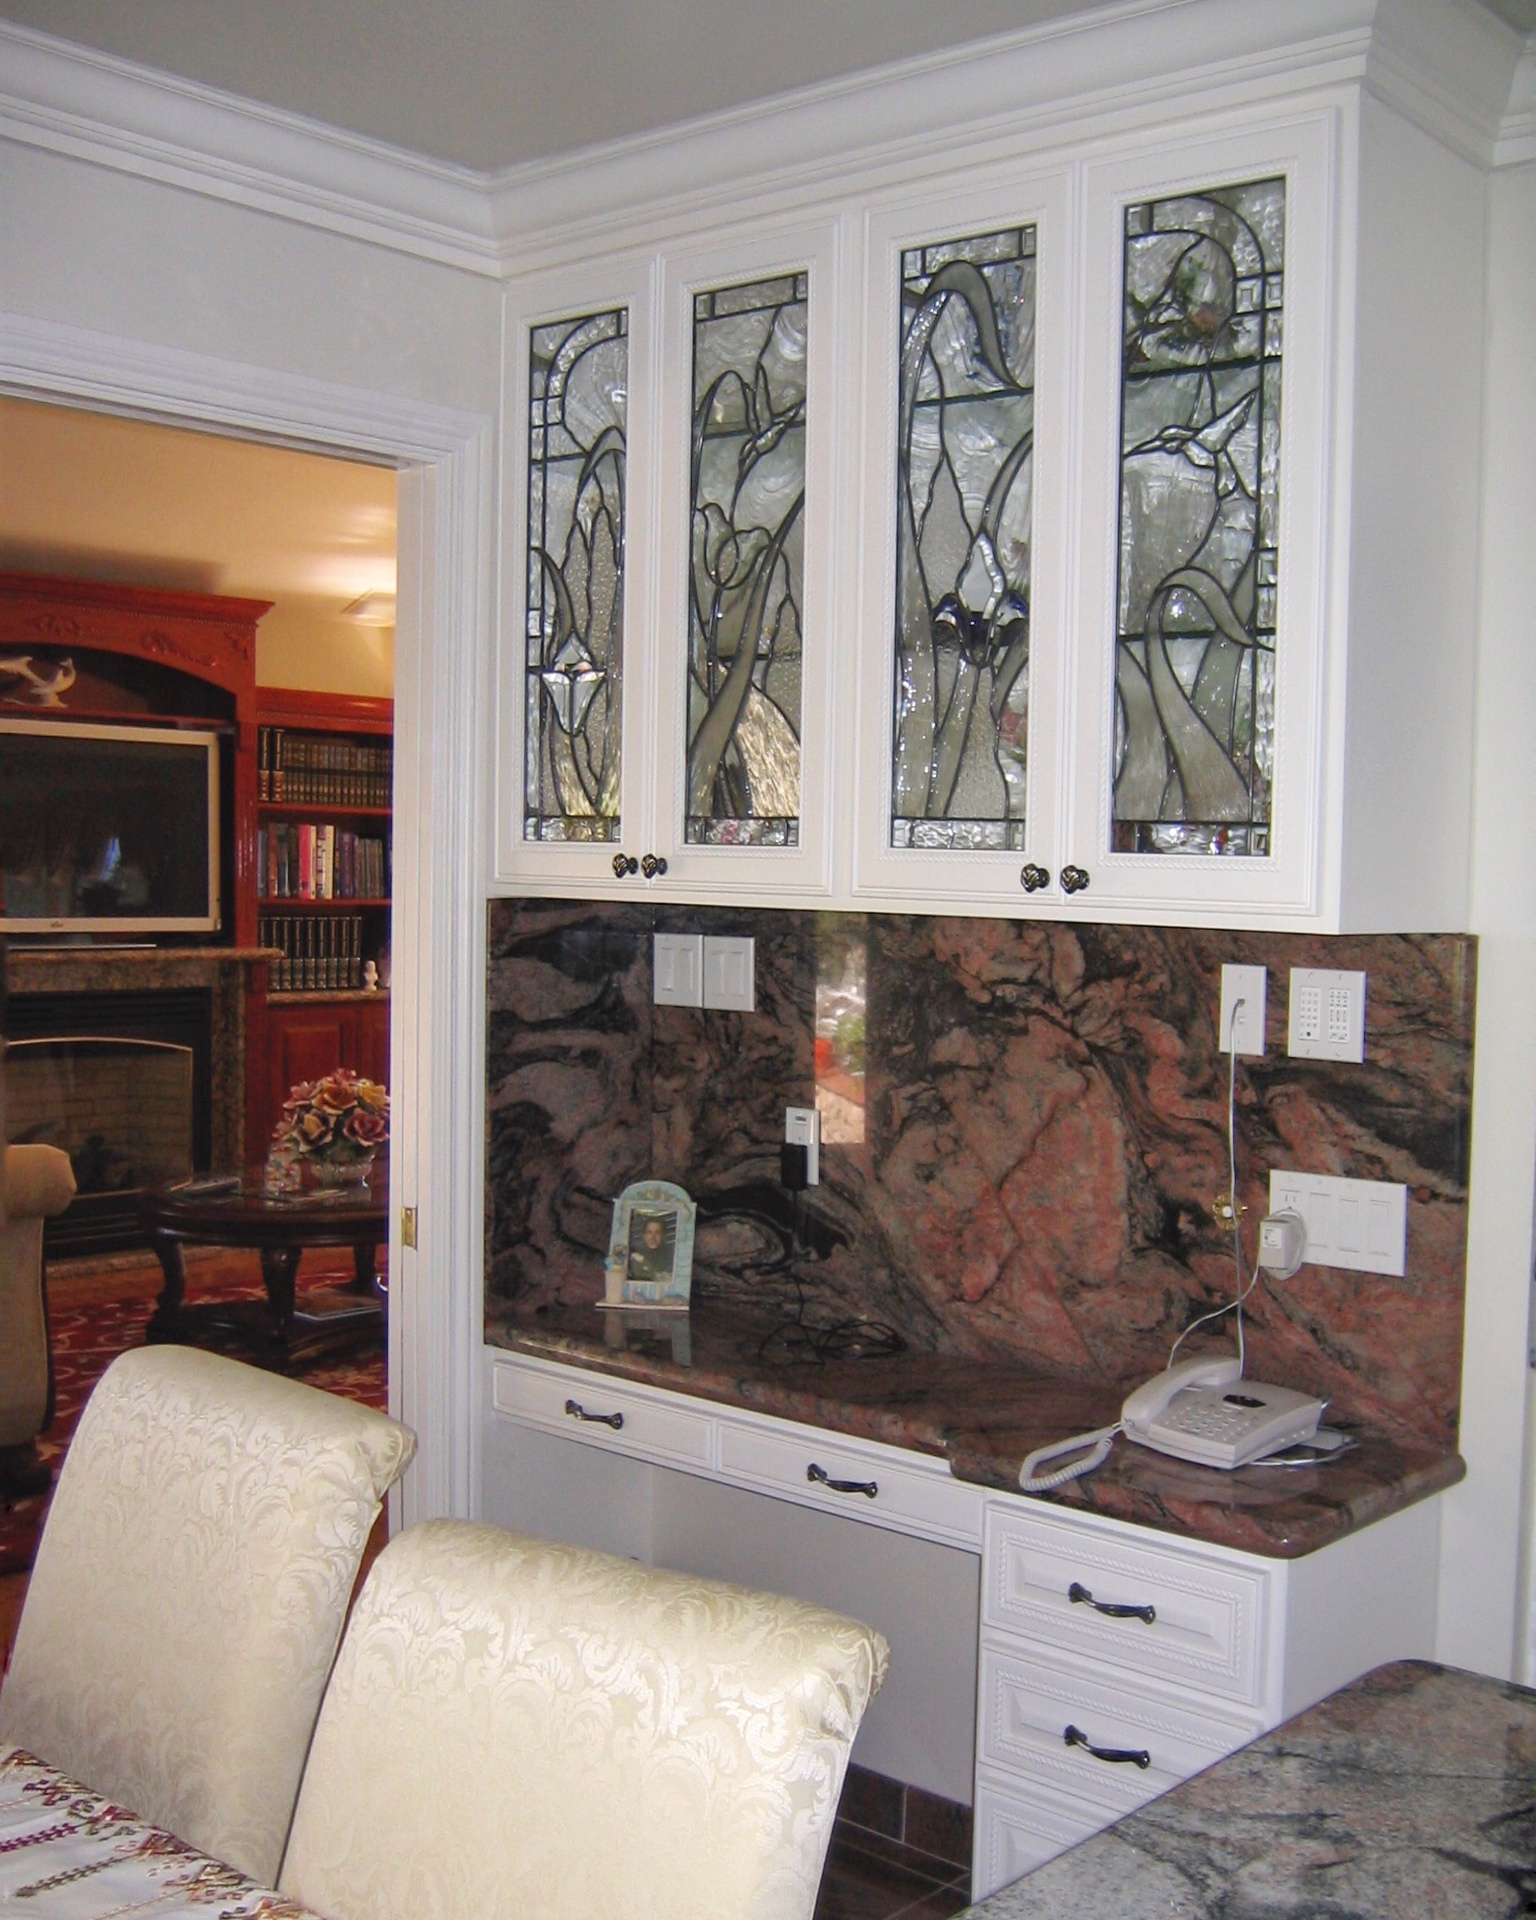 custom leaded glass cabinet door inserts kitchen hutch clear textured obscure privacy glass hummingbird garden floral design.jpg